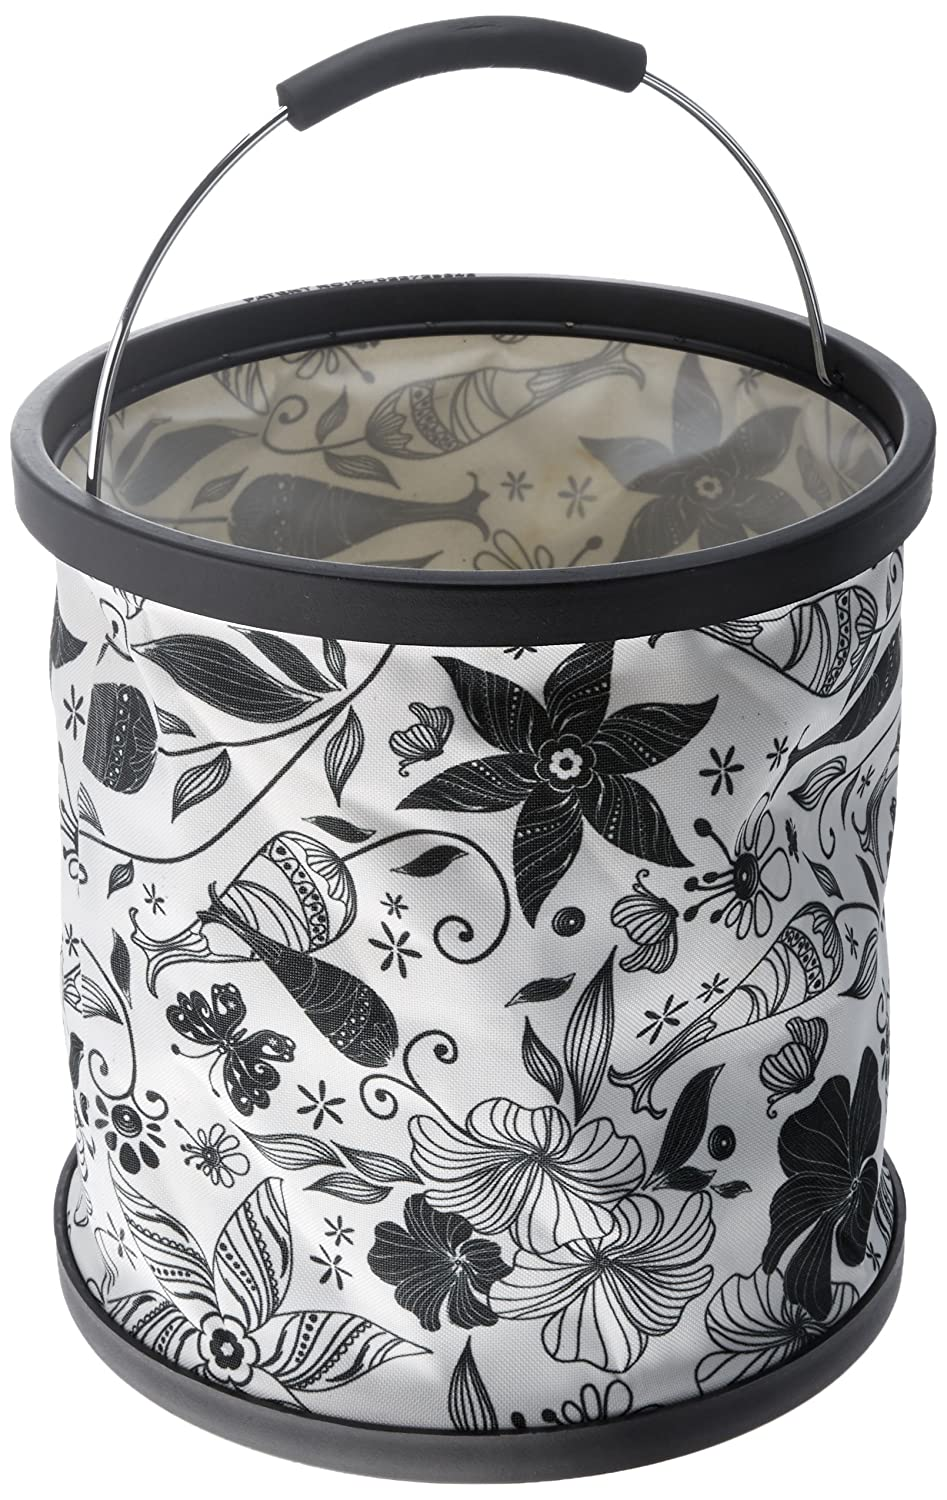 Black and White Star Kitchen PBBW Presto Buckets 2.9-Gallon